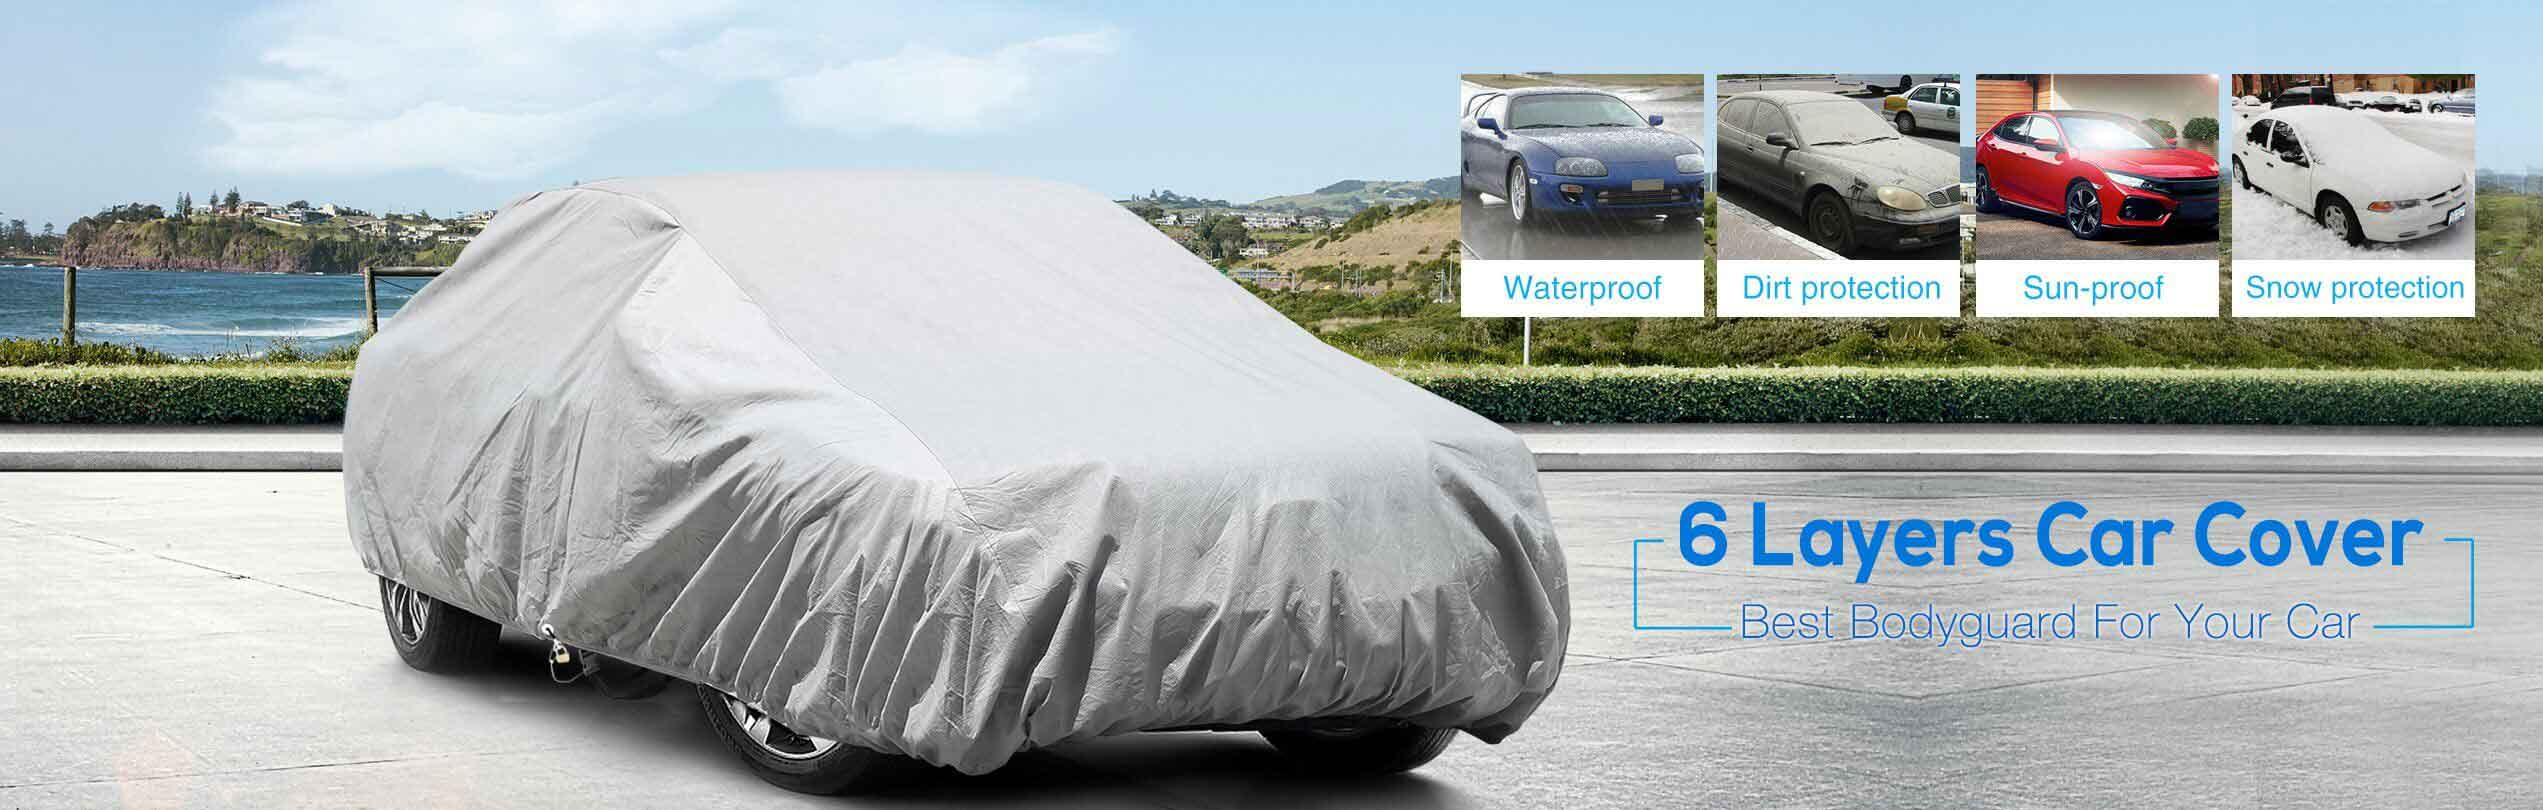 6 layers car cover